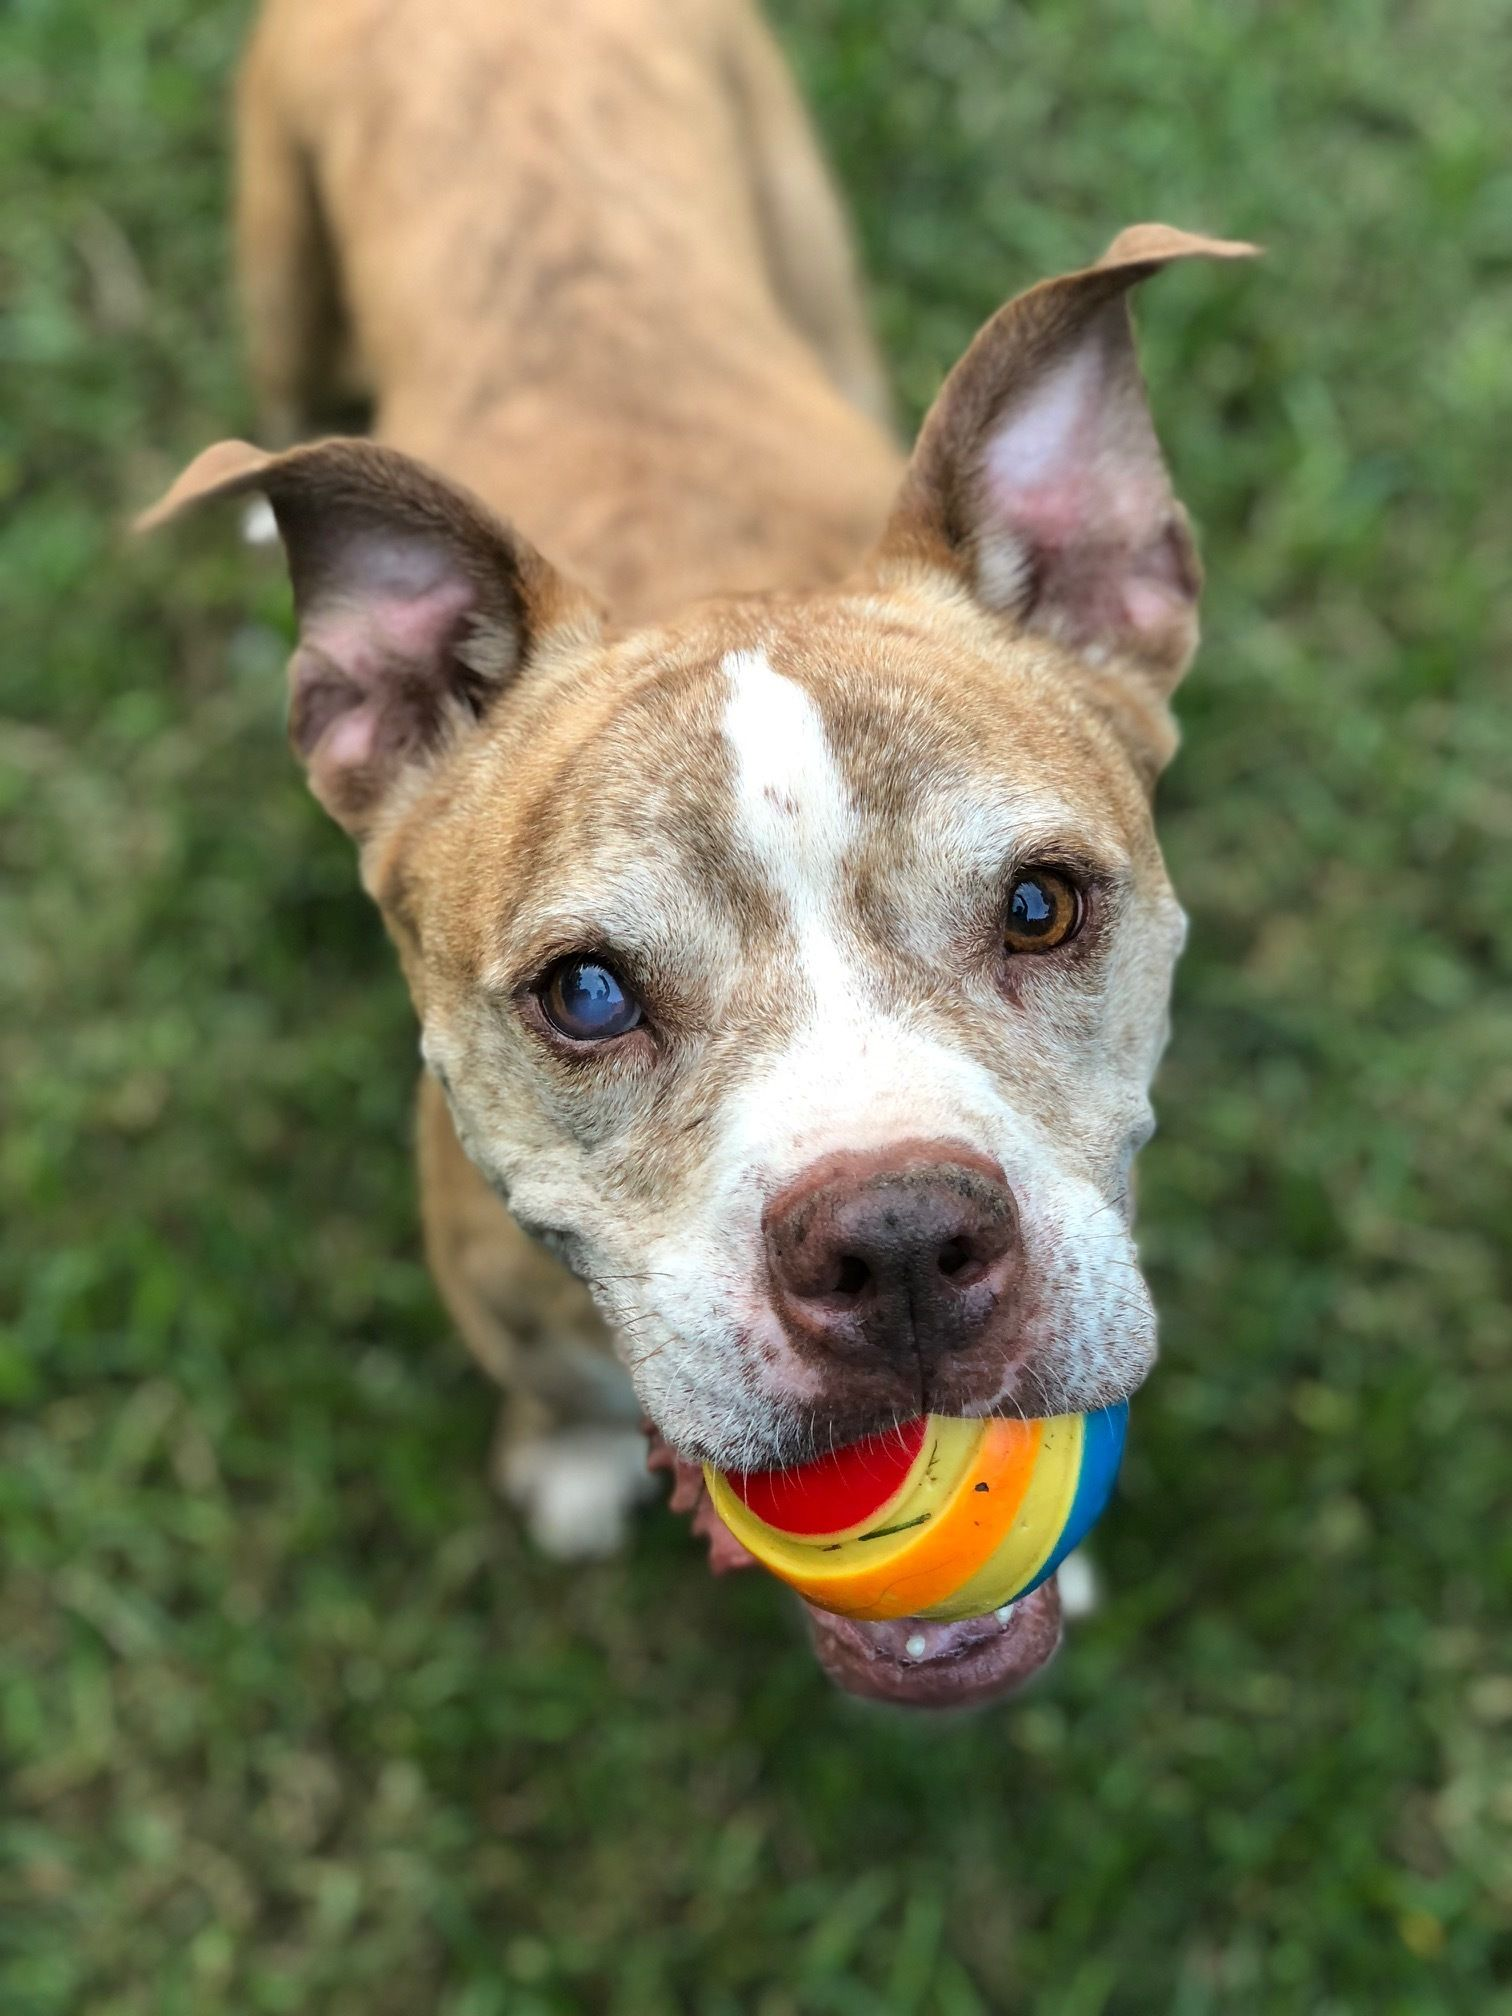 Adopt Frank Gallagher On Pitbull Terrier American Pitbull Terrier Bull Terrier Dog